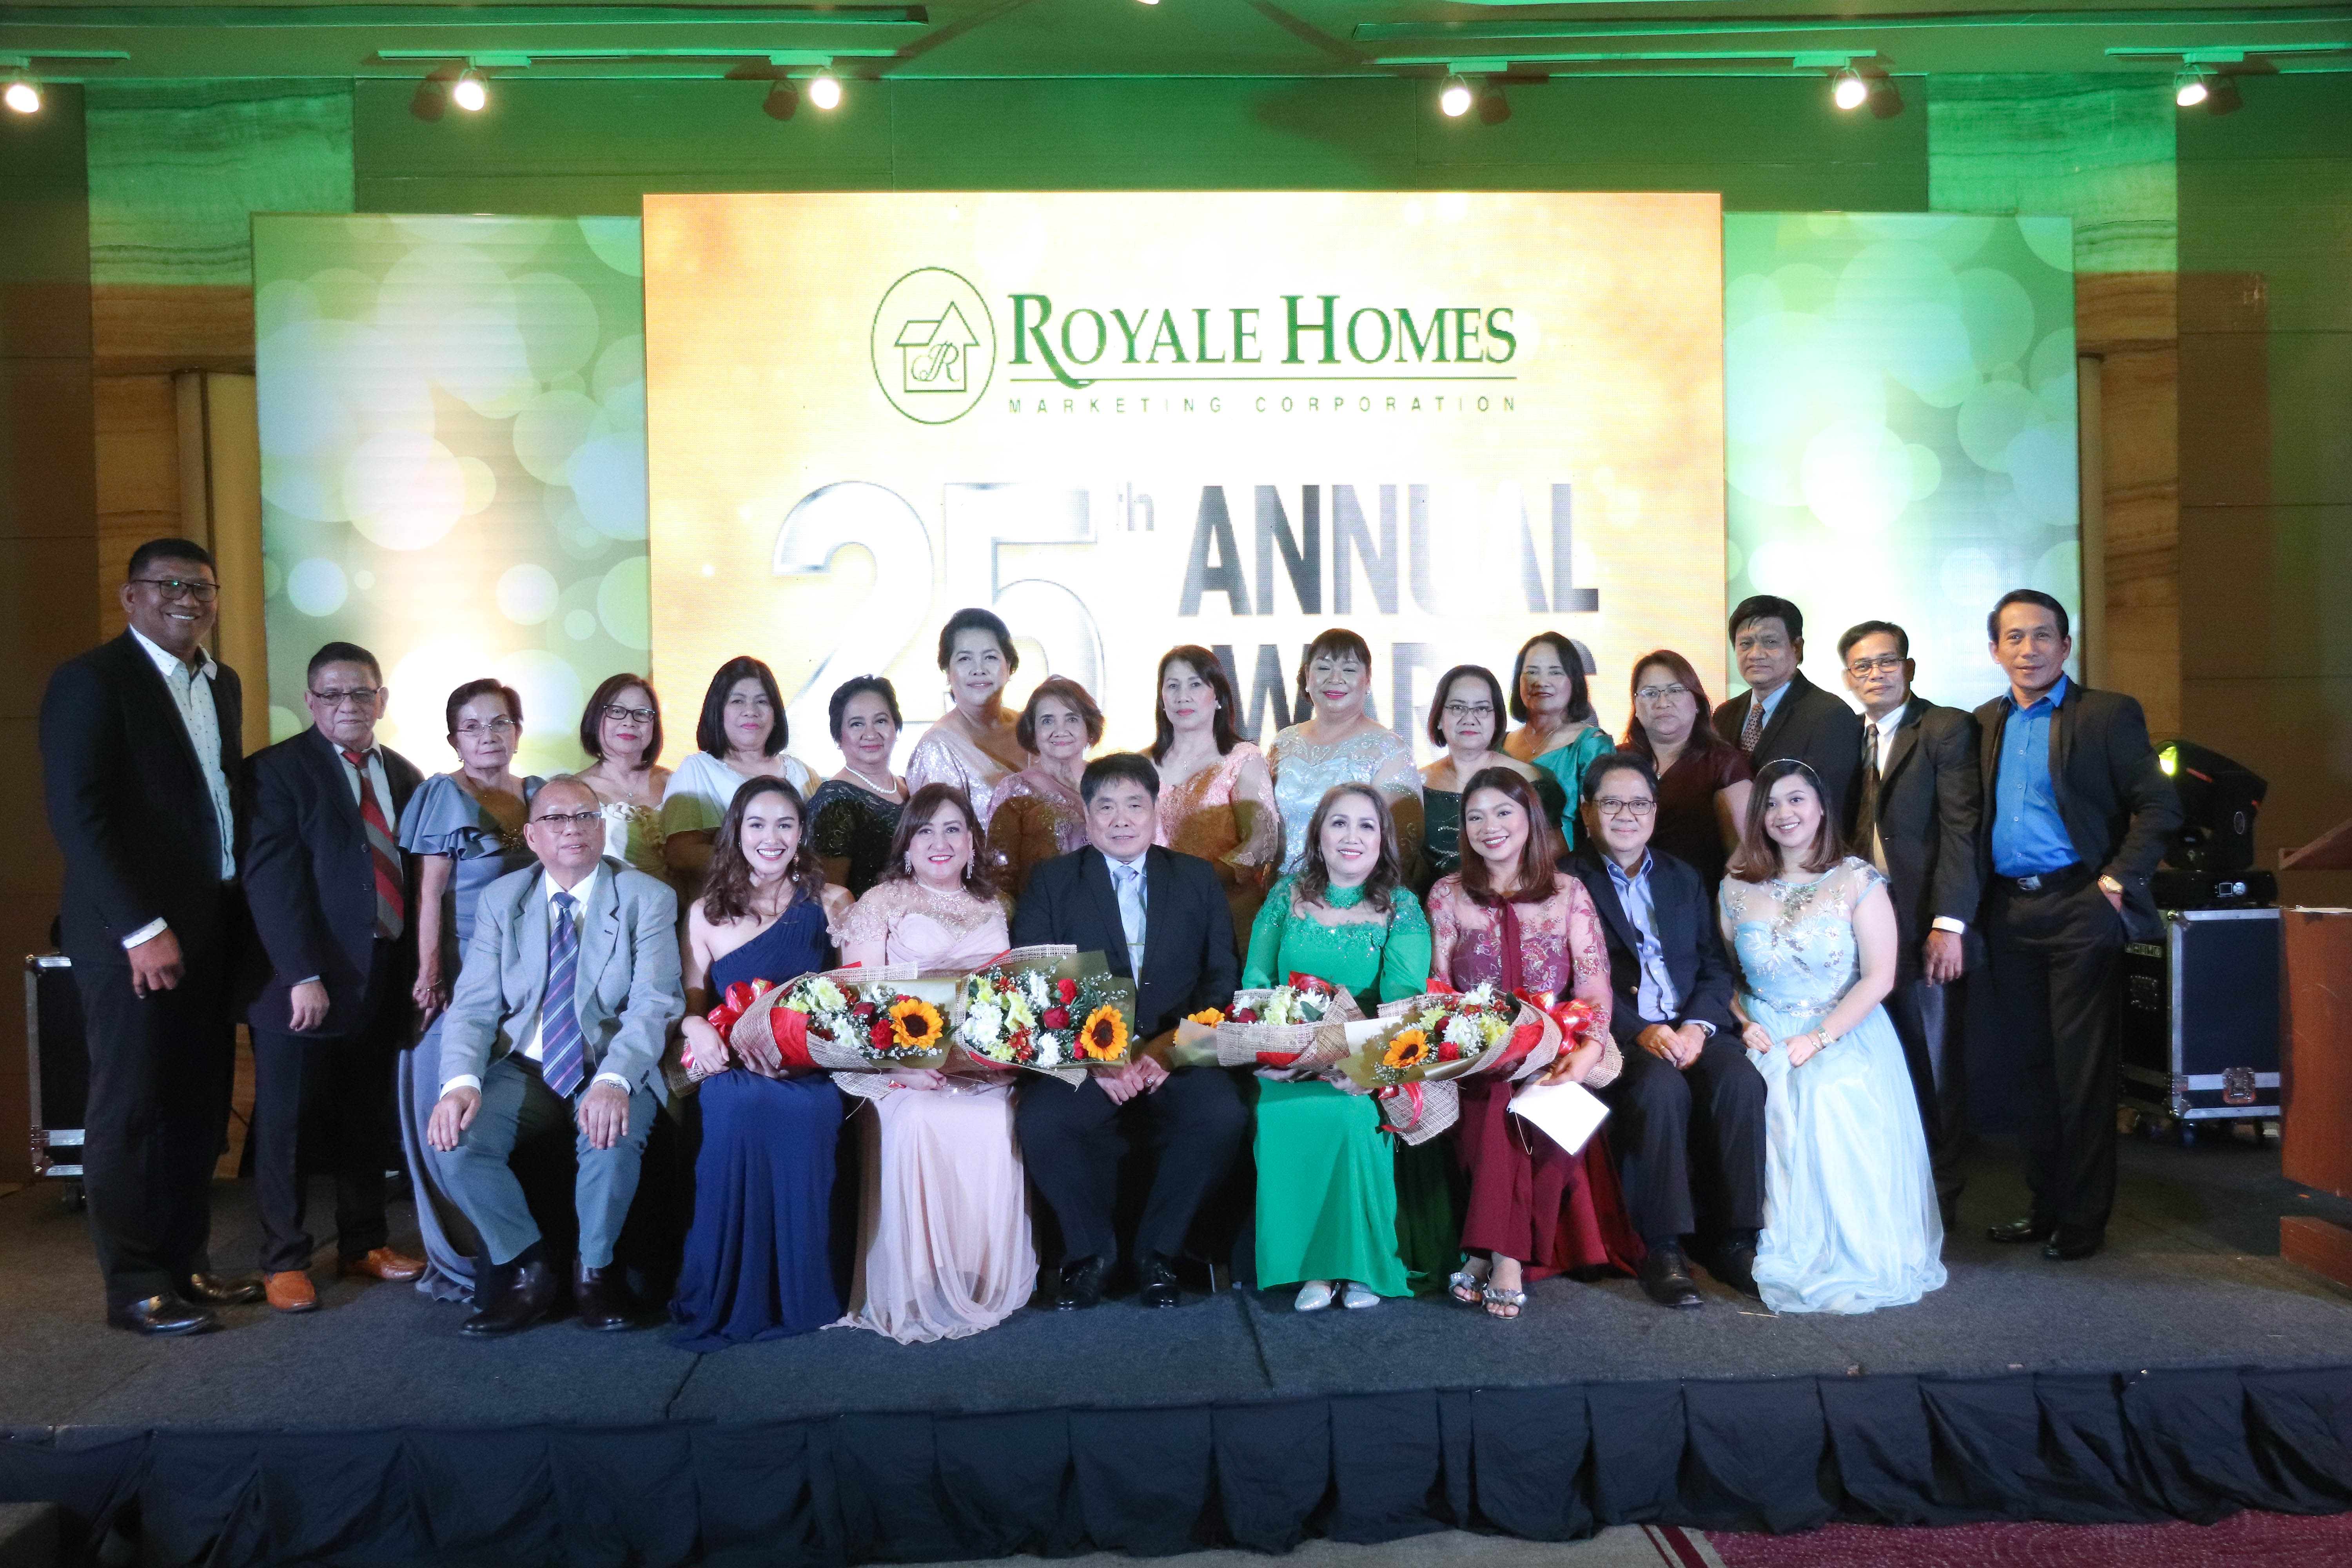 Top sellers, brokers feted at Royale Homes' 25th Annual Awards